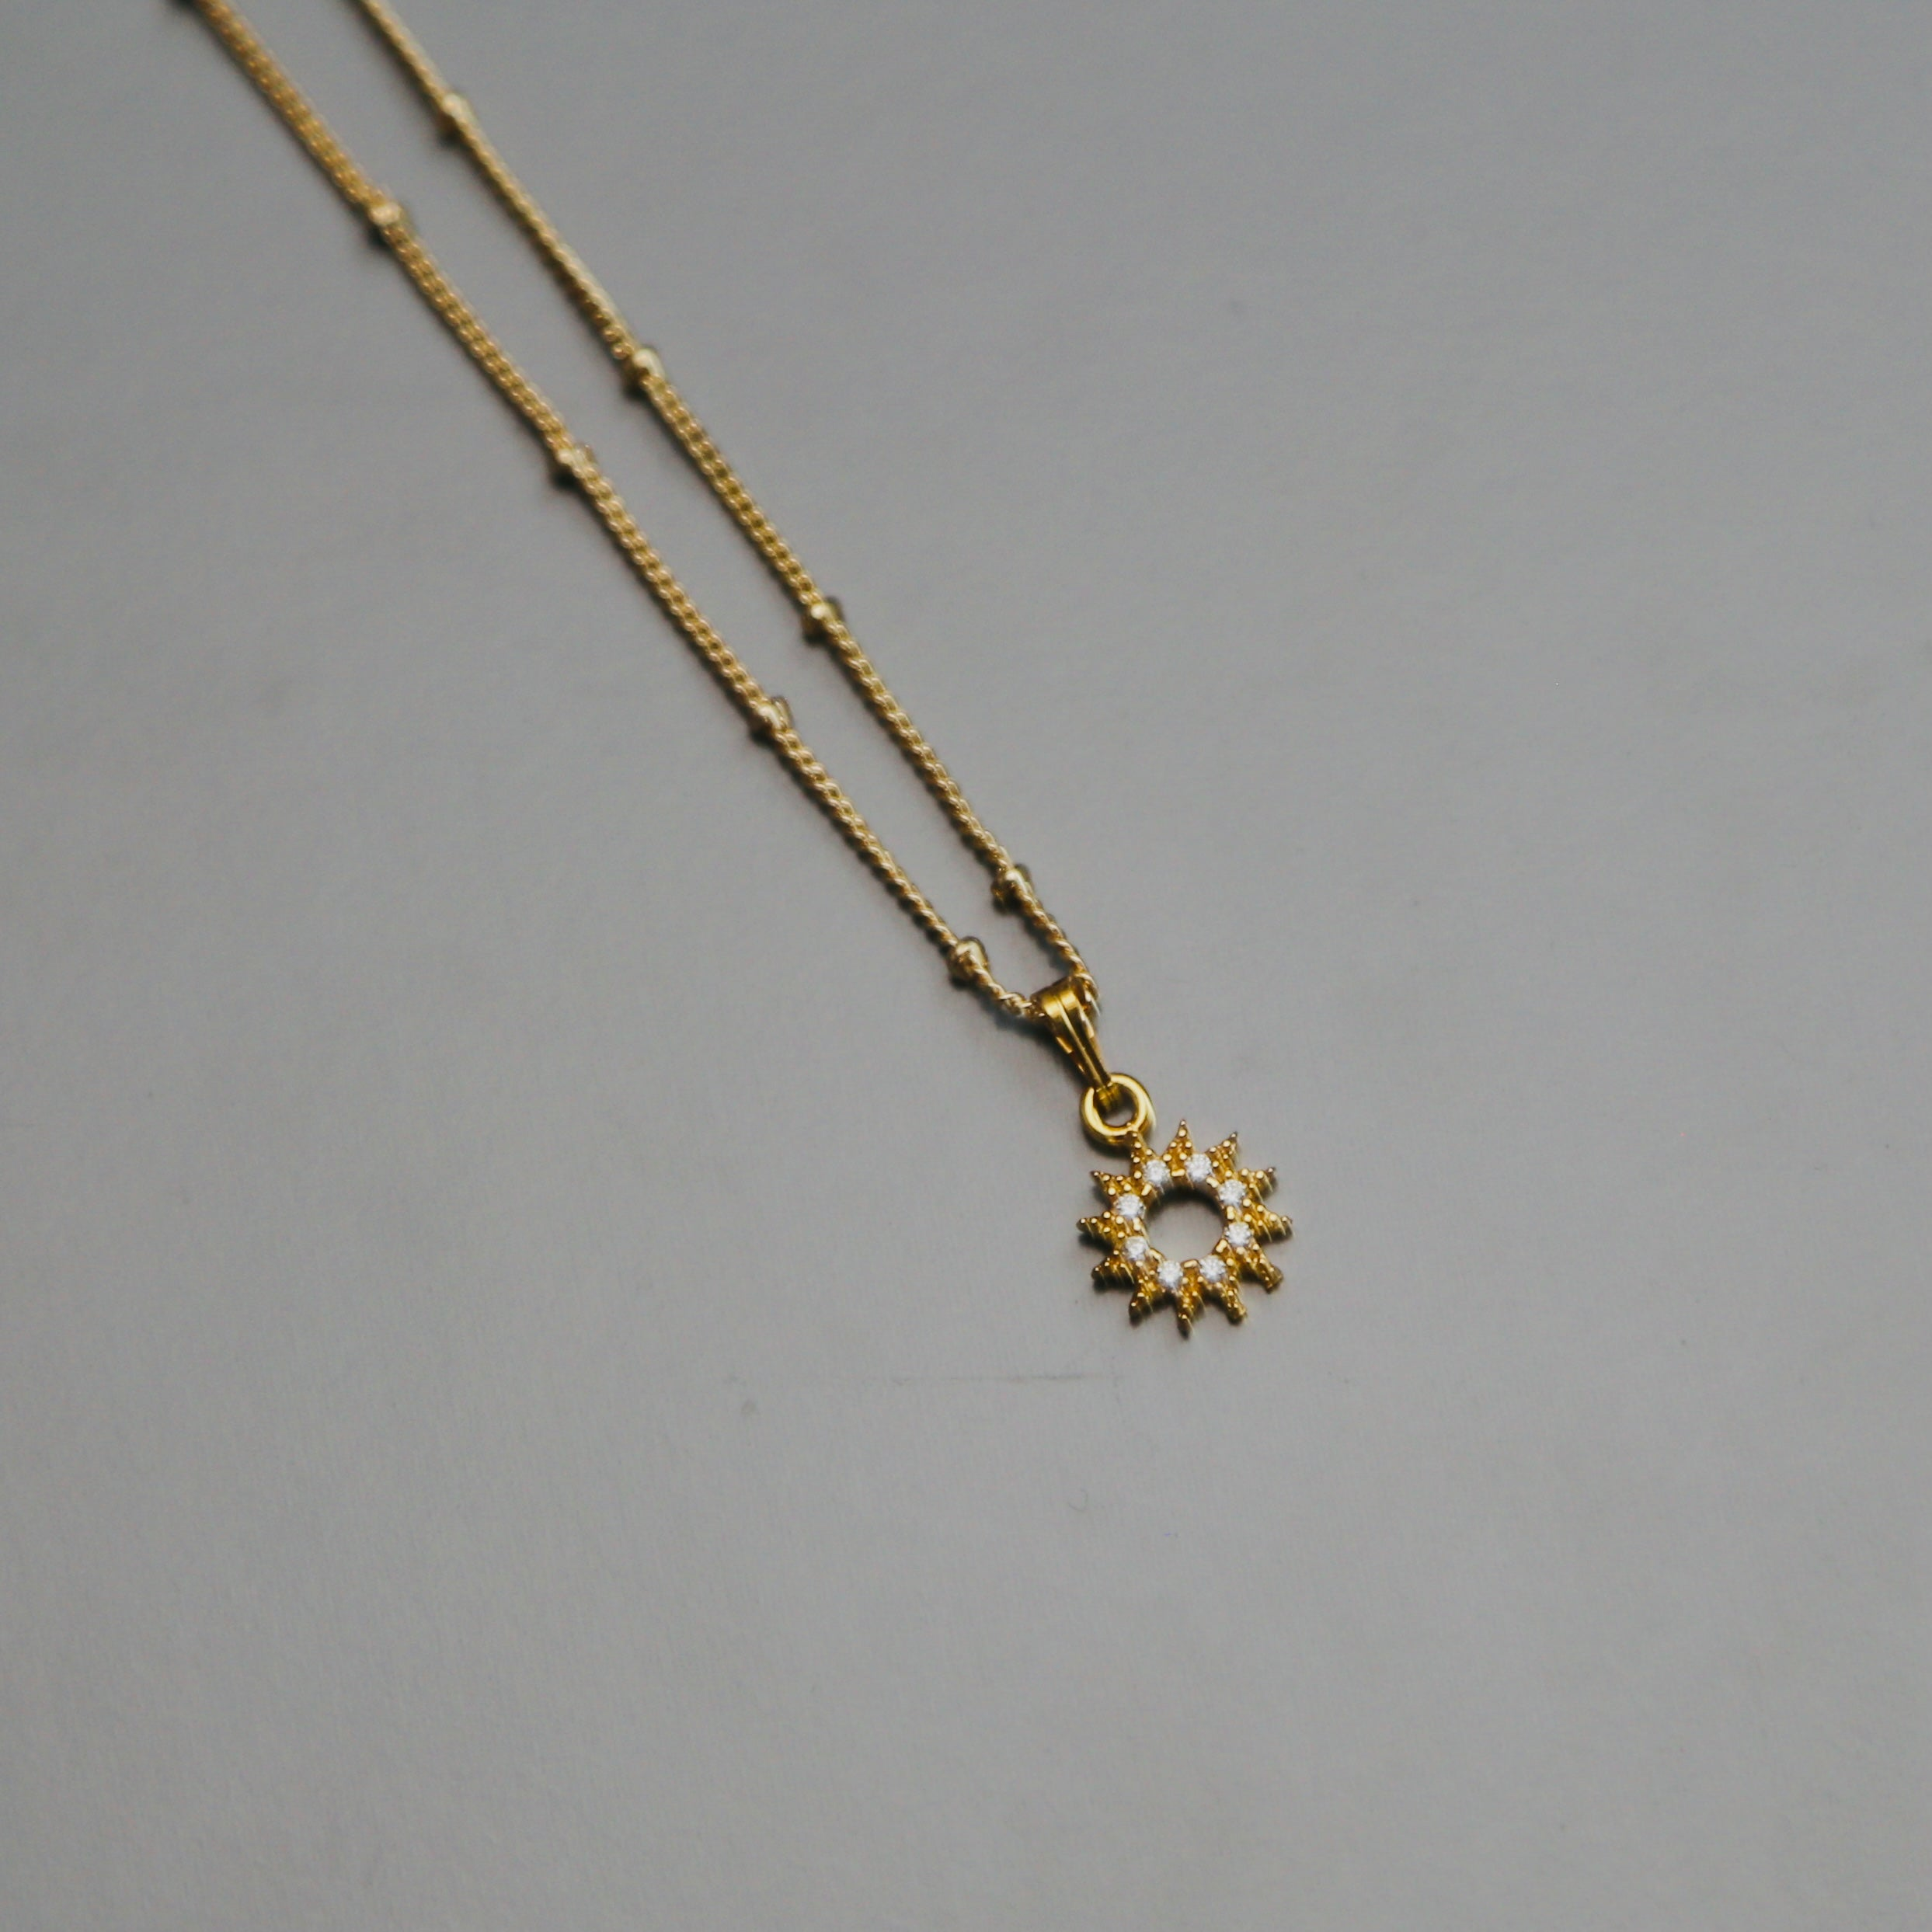 Small CZ Sunburst Necklace in Gold